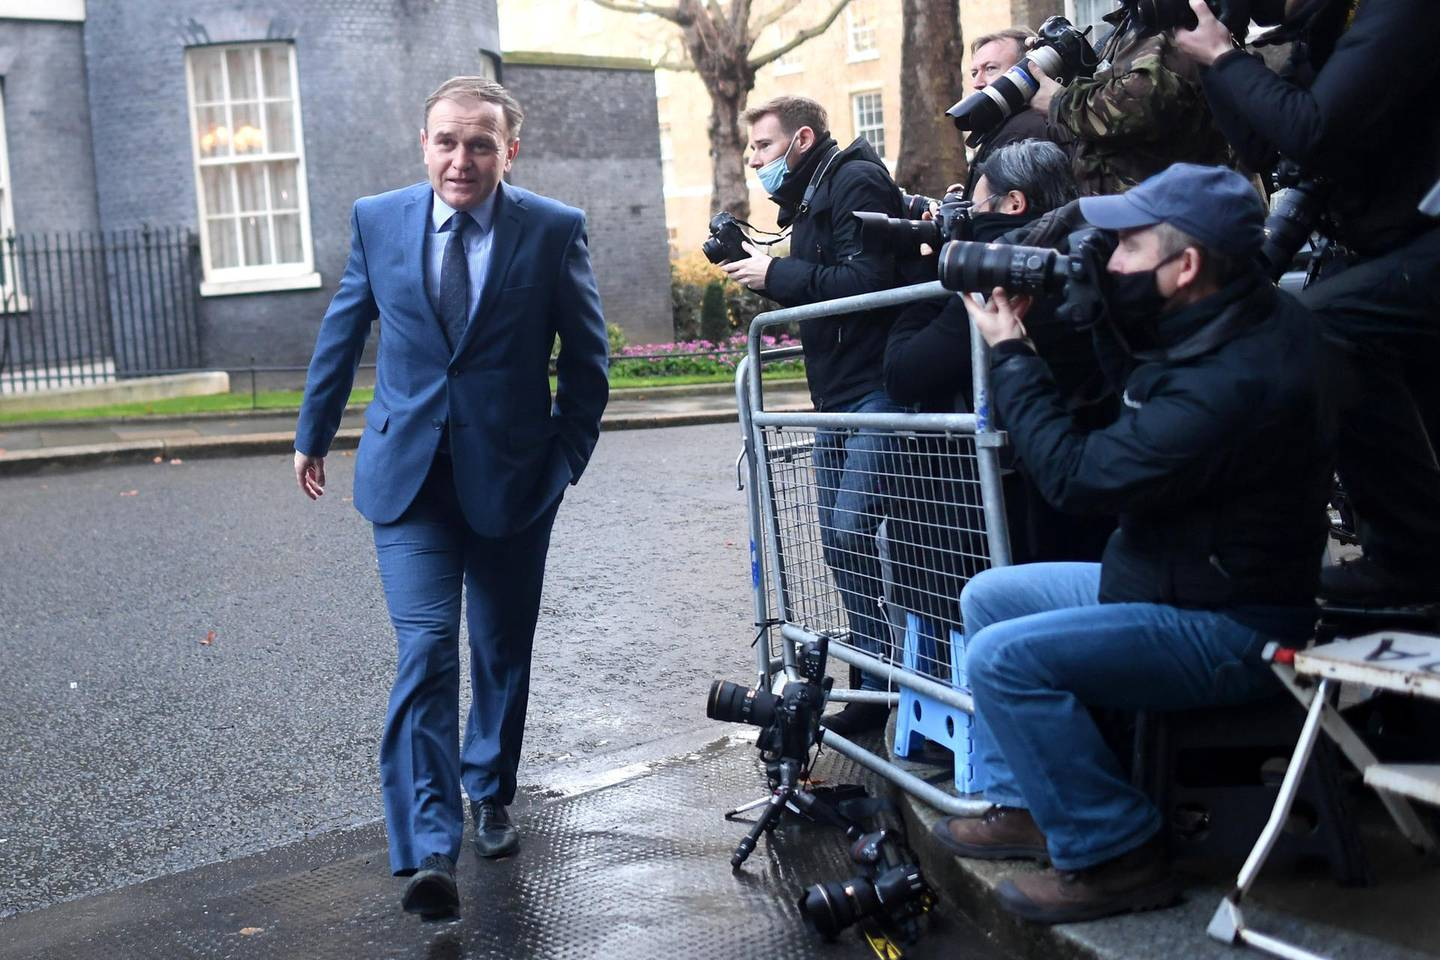 LONDON, ENGLAND - DECEMBER 15:  Environment Secretary George Eustice leaves Downing Street for a Cabinet Meeting at the FCO, on December 15, 2020 in London, England. Ministers may review the Christmas coronavirus guidelines that allow three households to meet inside for a five-day period, after a spike in cases across London and the South East that sees the area moving into Tier 3 from 00:01 Wednesday. (Photo by Peter Summers/Getty Images)